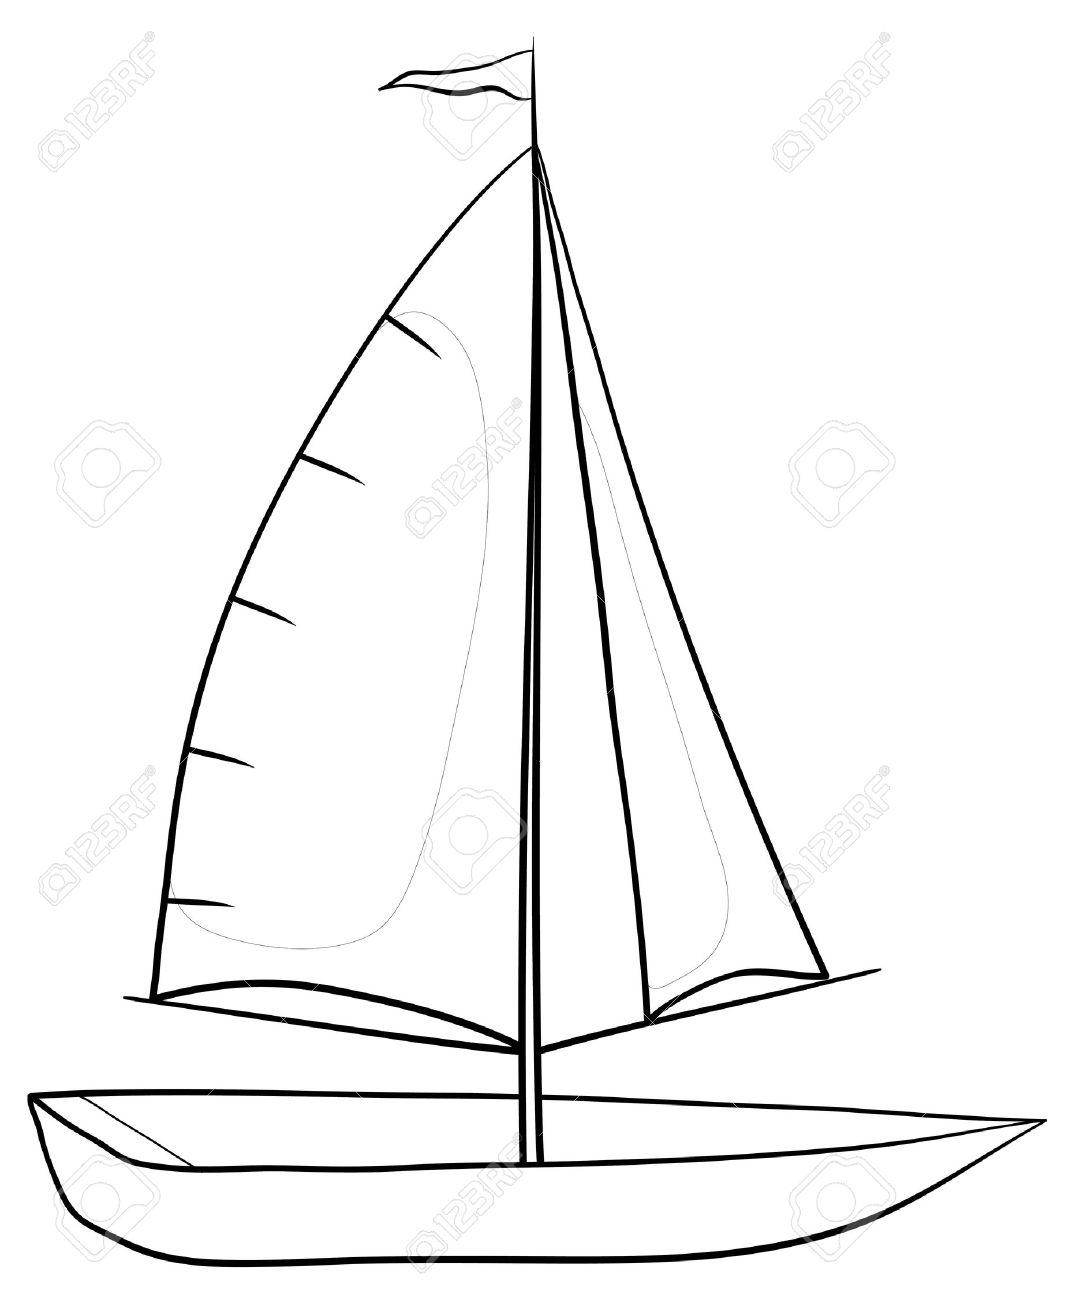 sailing boat with a flag on the mast monochrome contours on